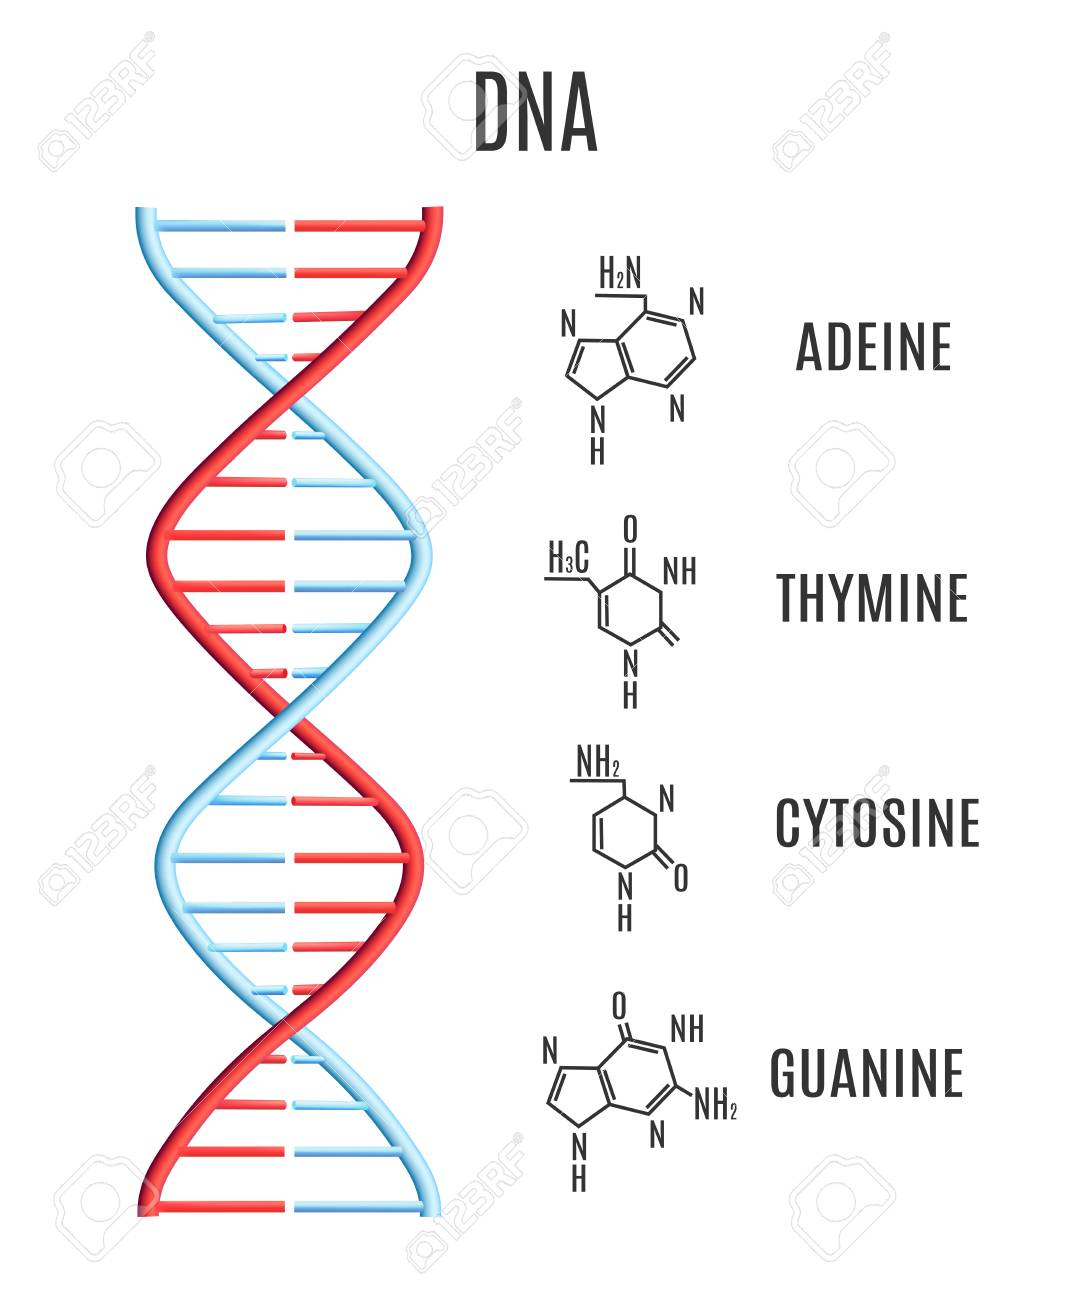 Vector Dna Molecule With Chromosomes And Subunits Adeine Thymine Royalty Free Cliparts Vectors And Stock Illustration Image 125061516